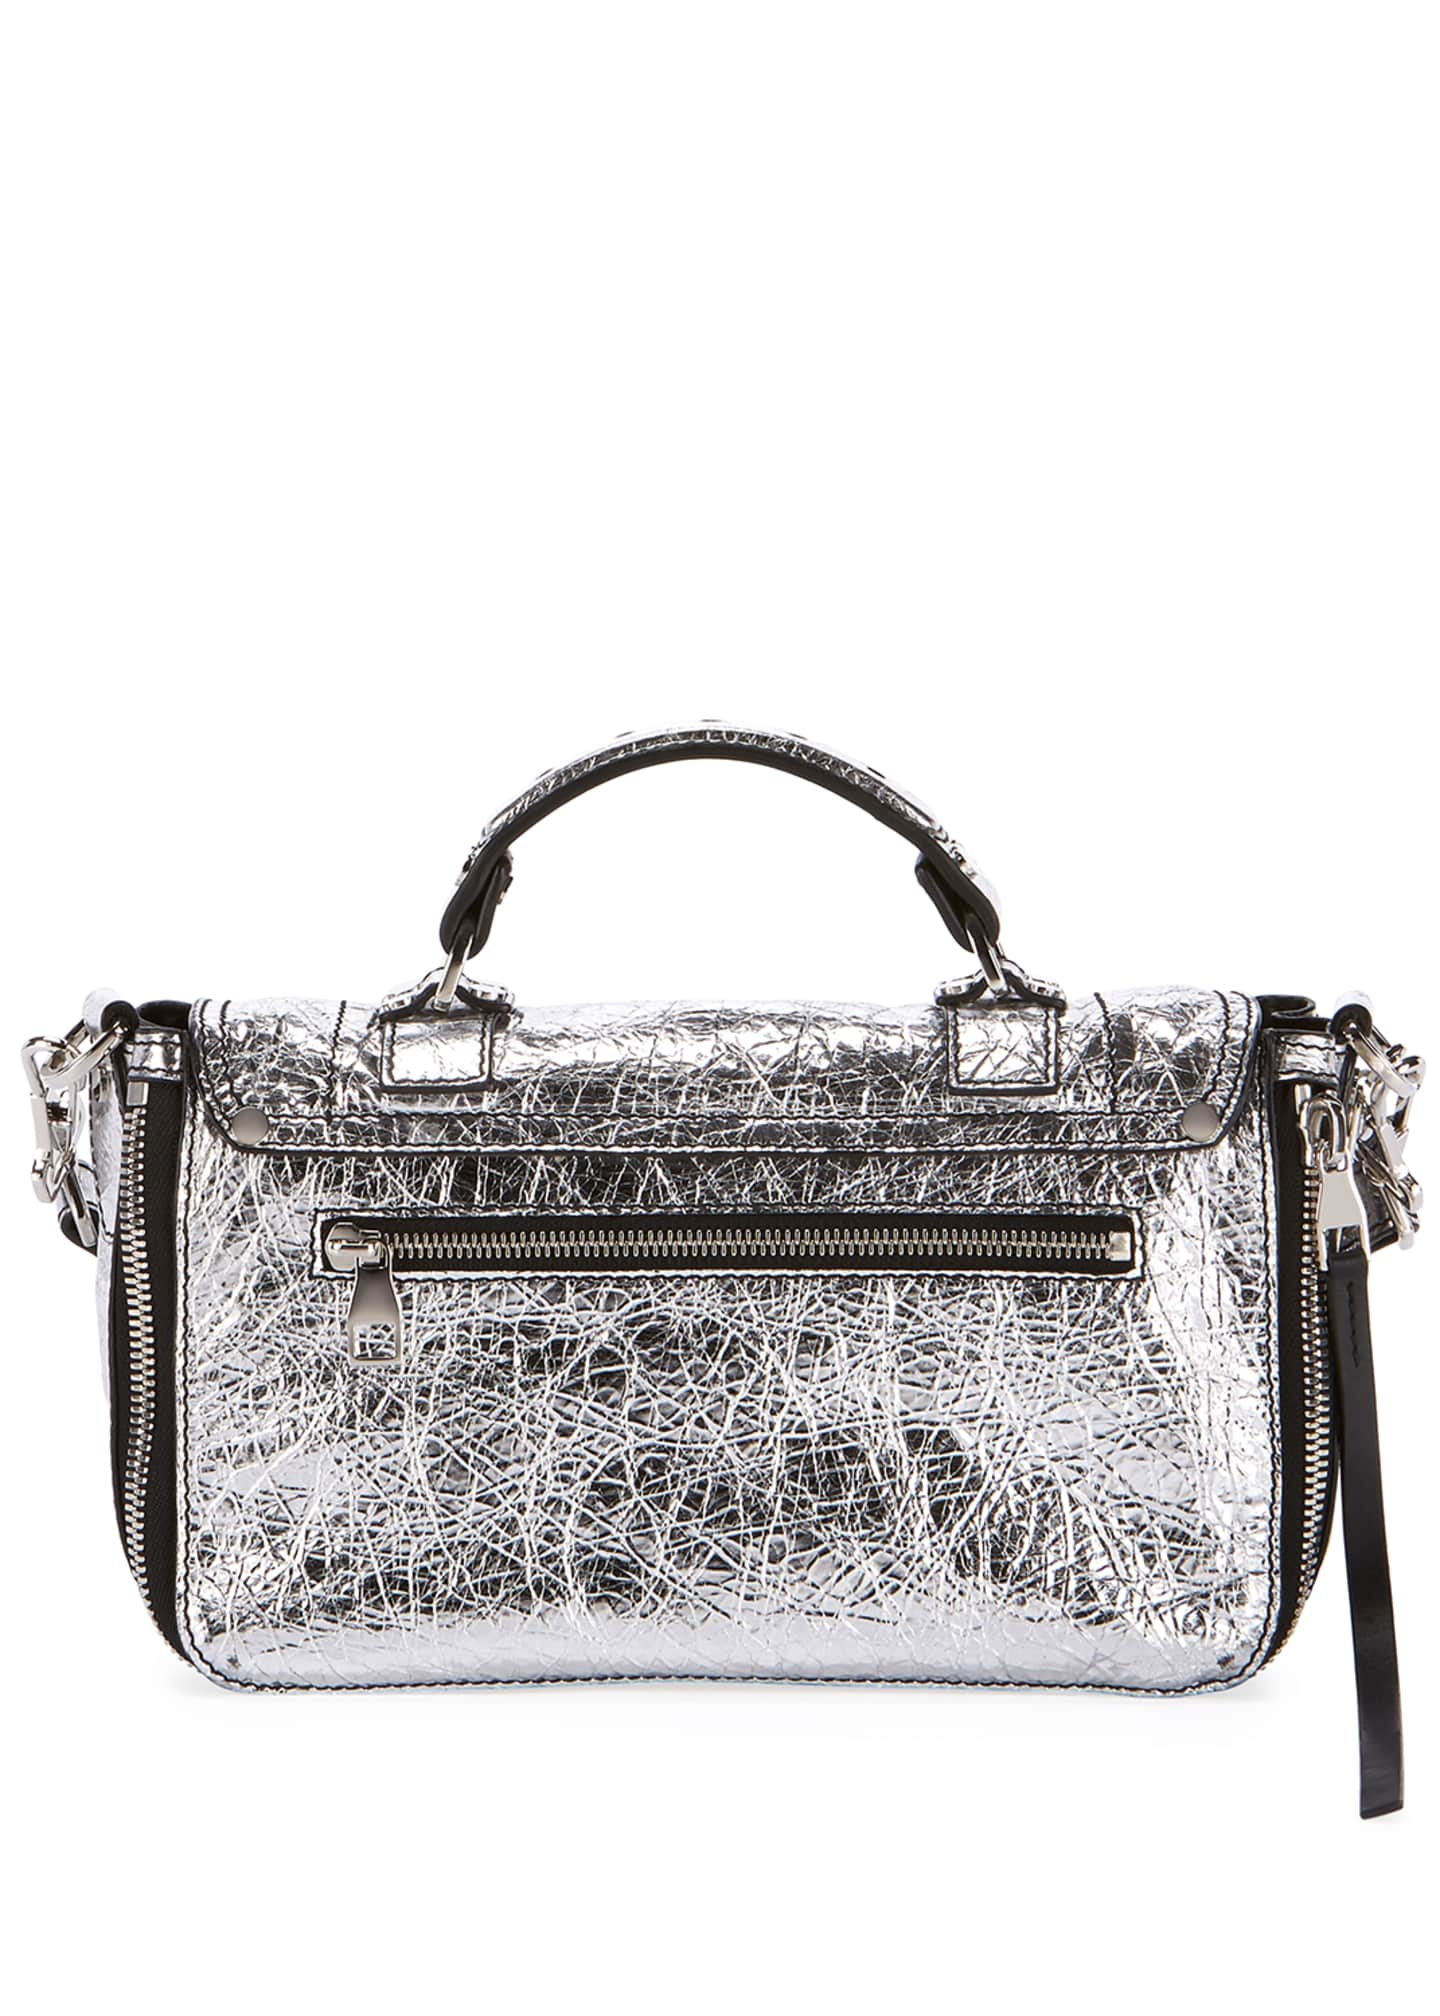 Image 3 of 3: PS1+ Tiny Metallic Leather Satchel Bag